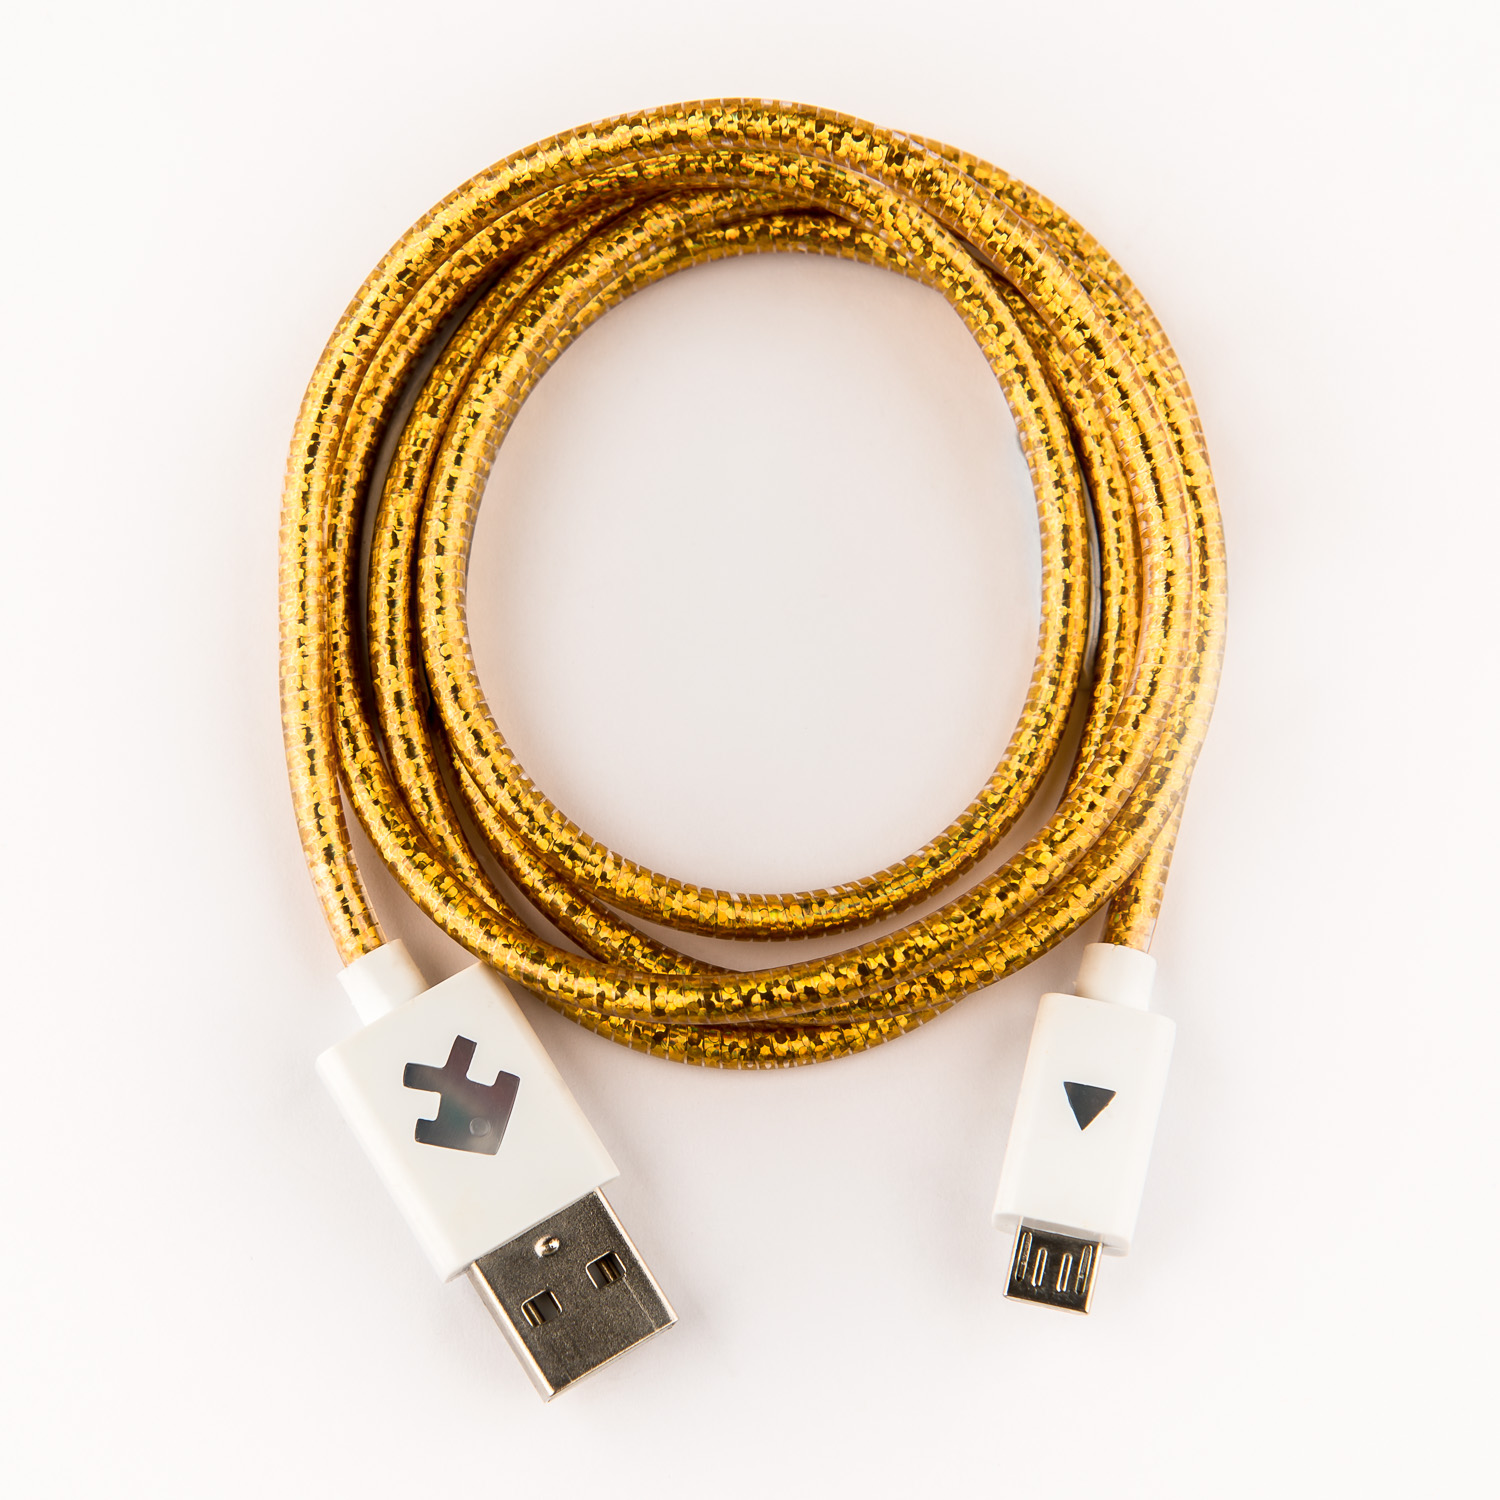 Xcyte Ultra fast Android USB recharge cable (GOLD GLITTER) – 1 metre